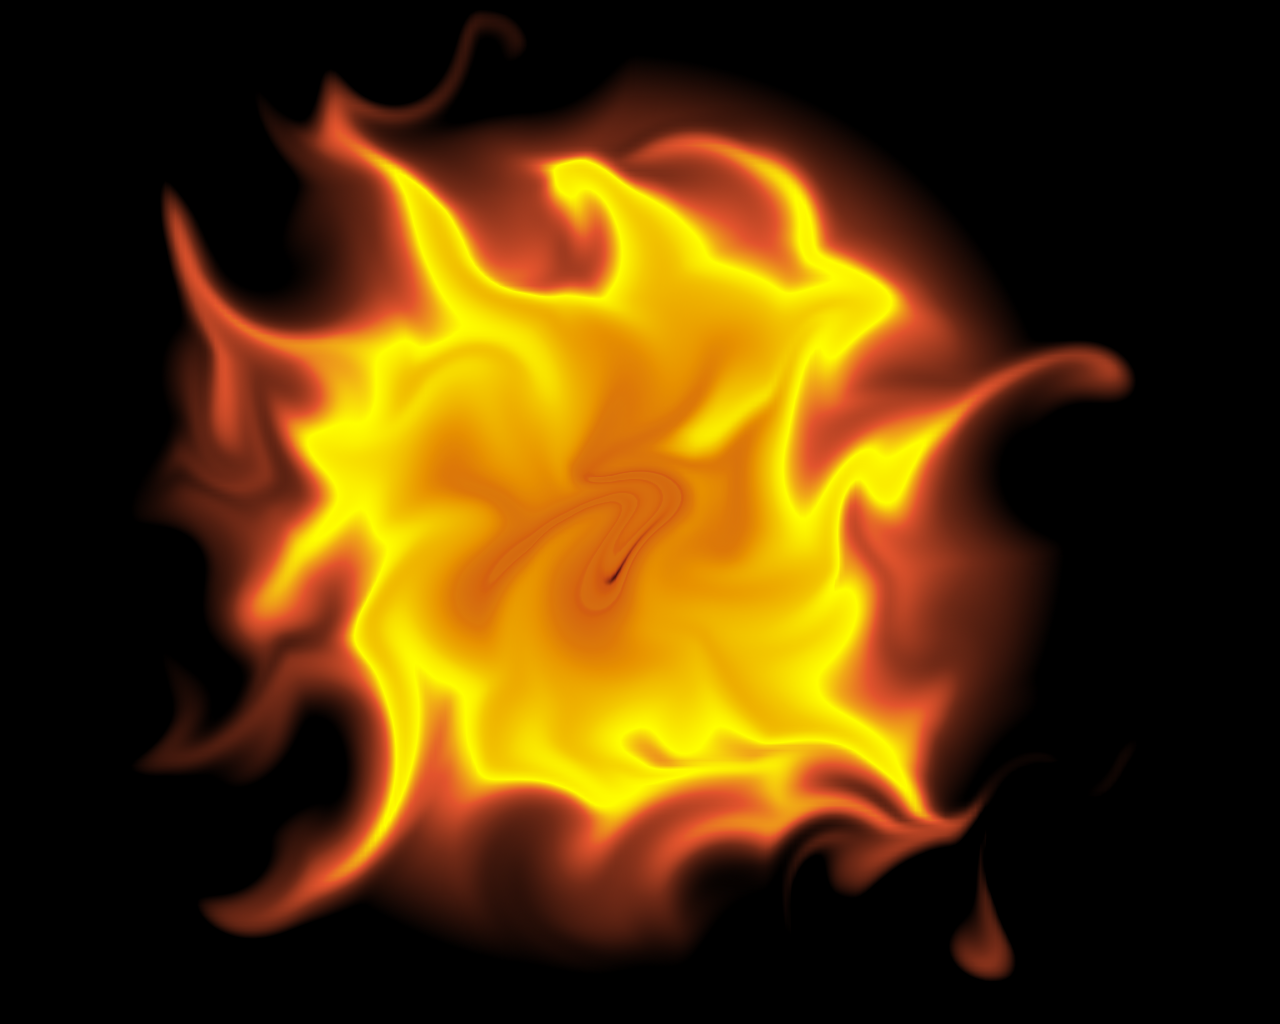 Fireball Hd Image.